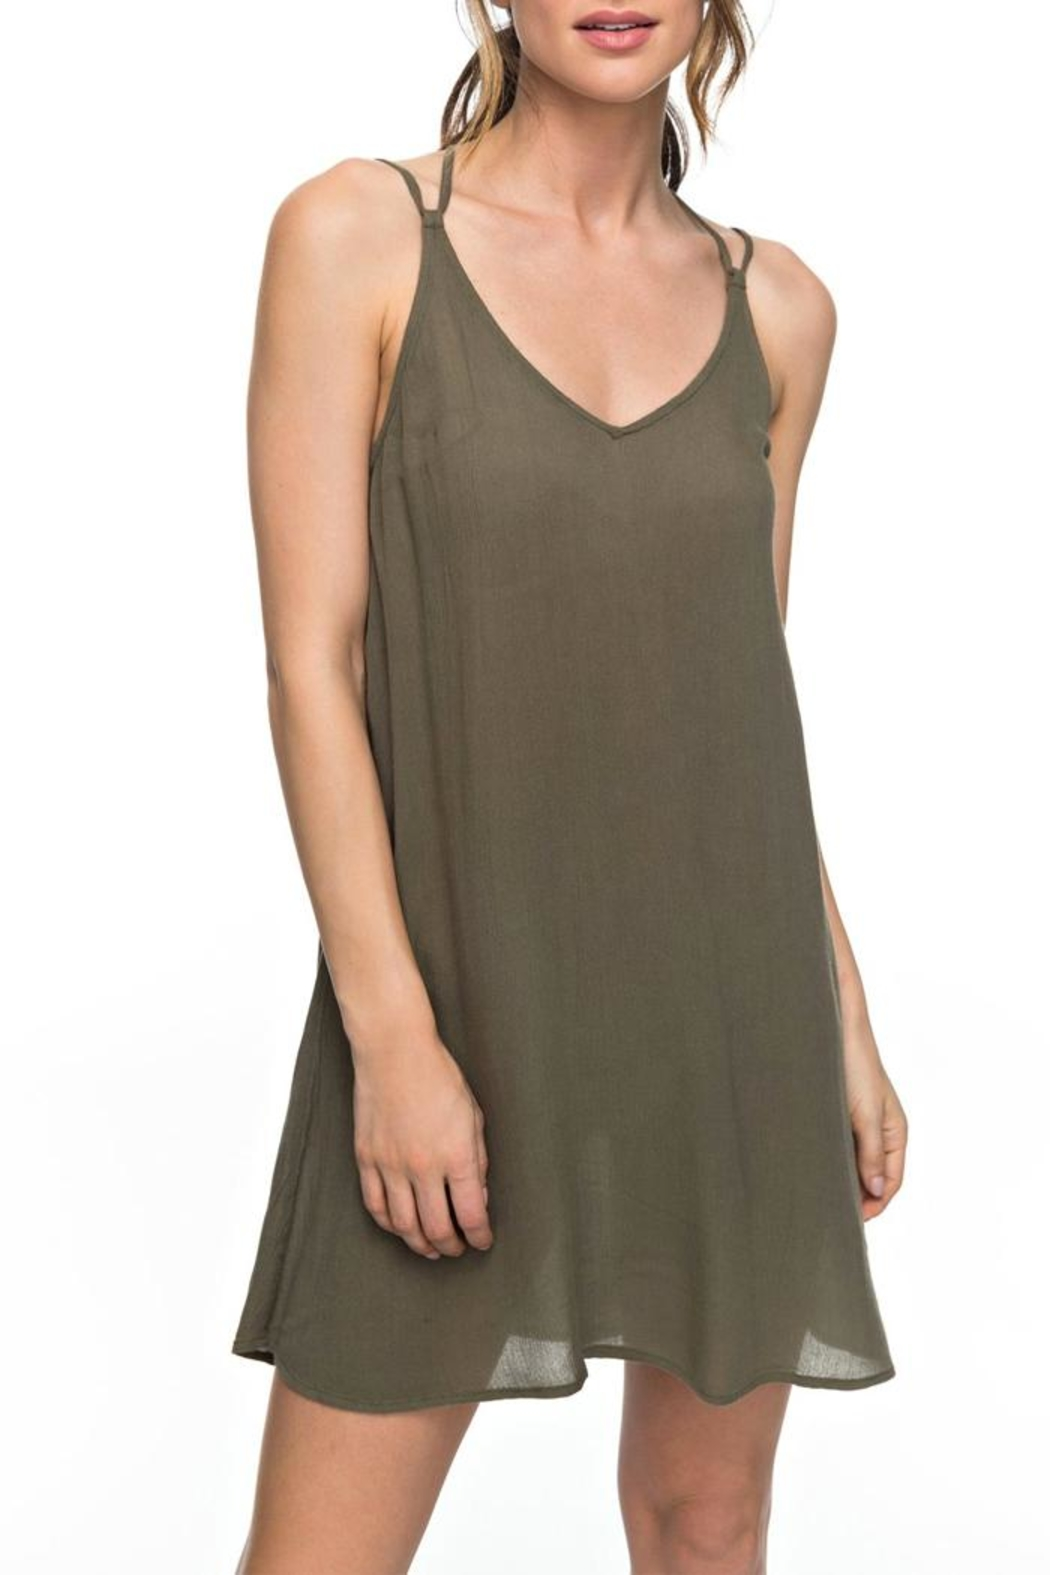 Roxy Green Strappy Dress - Front Cropped Image